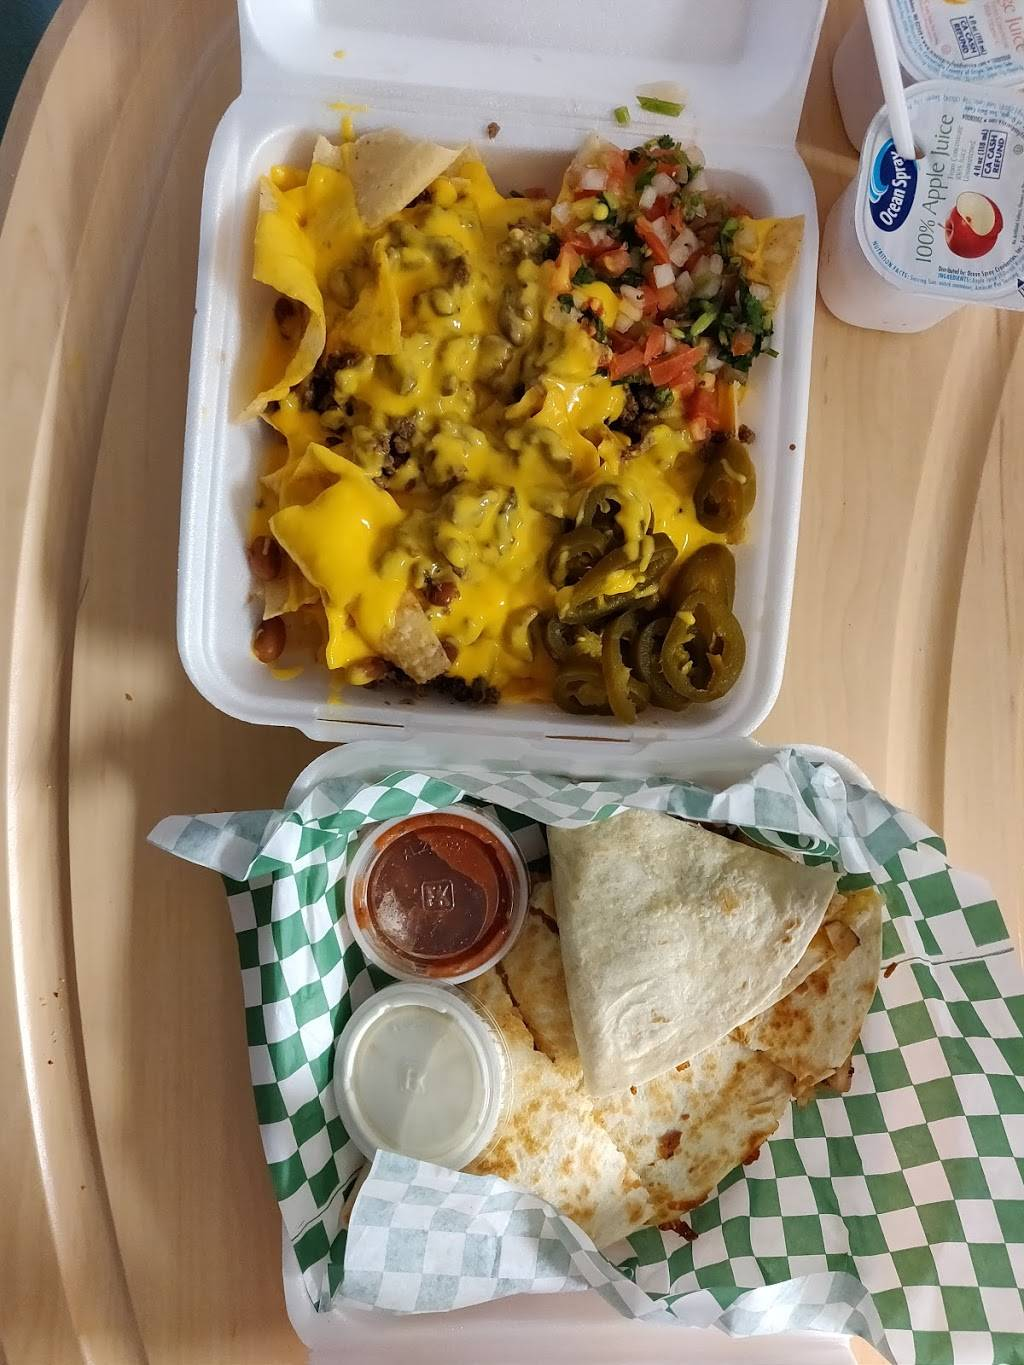 Anisas Kitchen   restaurant   Medical City Hospital-Building A, Forest Ln, Dallas, TX 75230, USA   9725665525 OR +1 972-566-5525